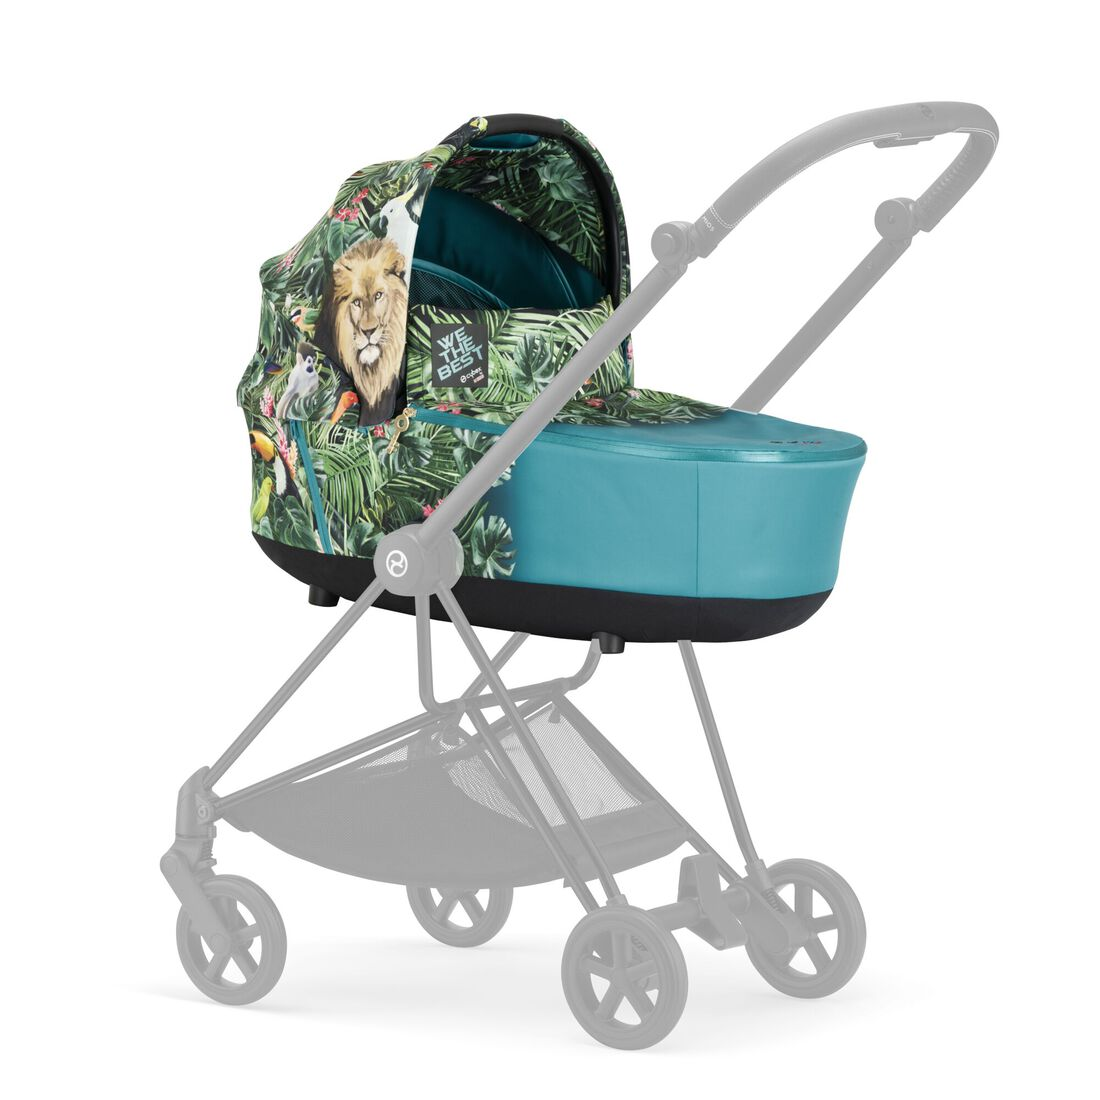 CYBEX Mios Lux Carry Cot - We The Best in We The Best large image number 4